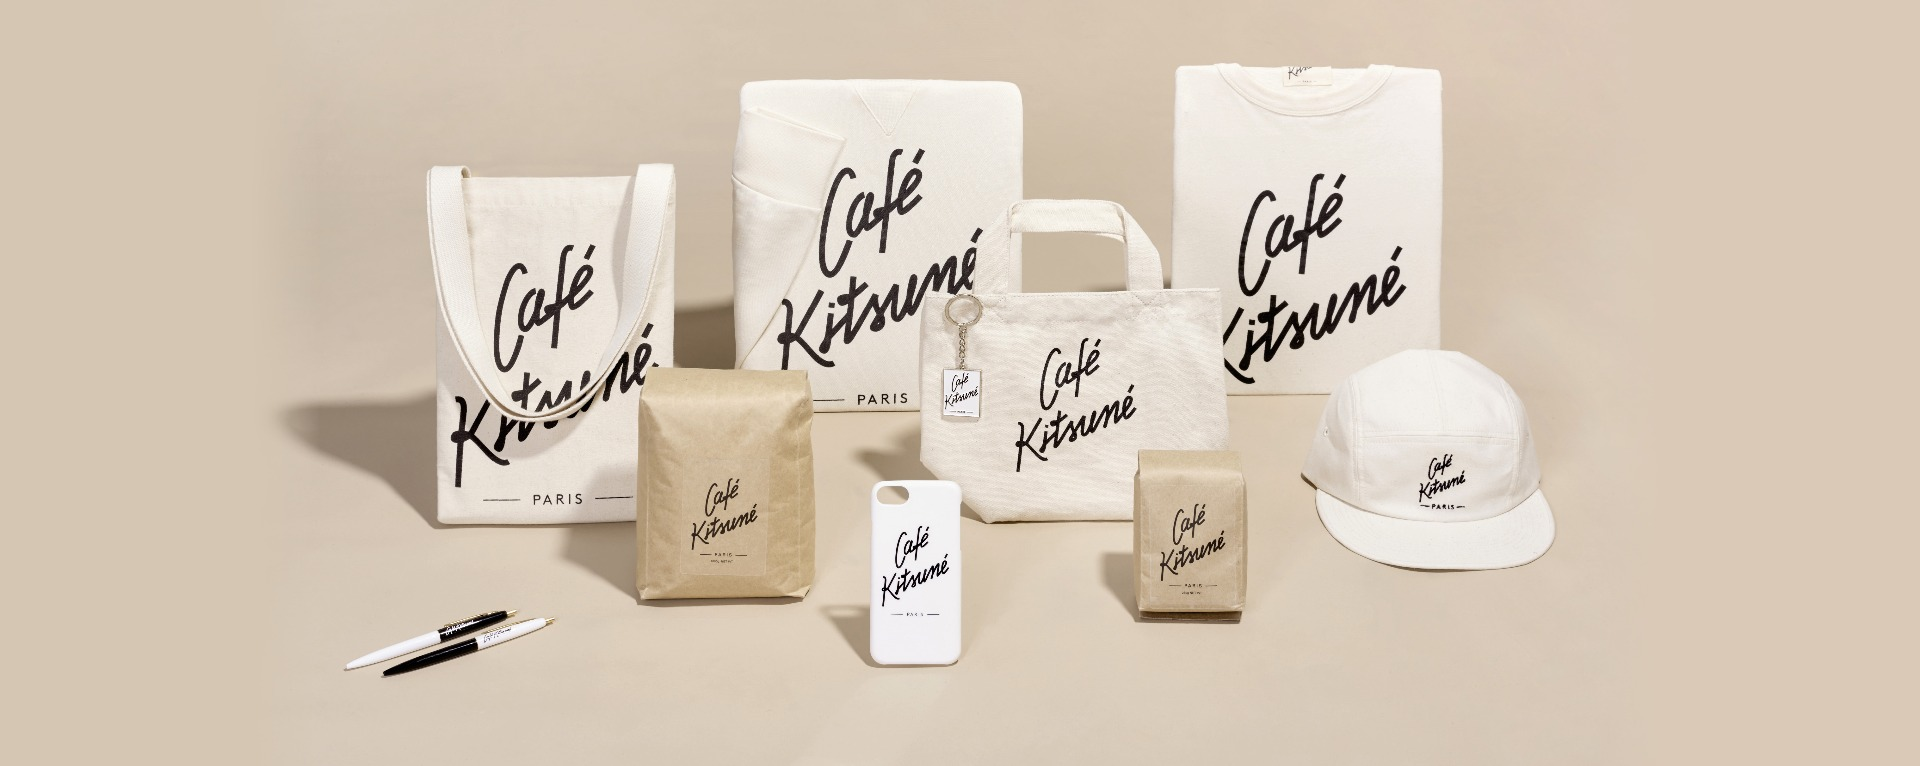 https://maisonkitsune.com/media/wysiwyg/030918_launch-cafe.jpg